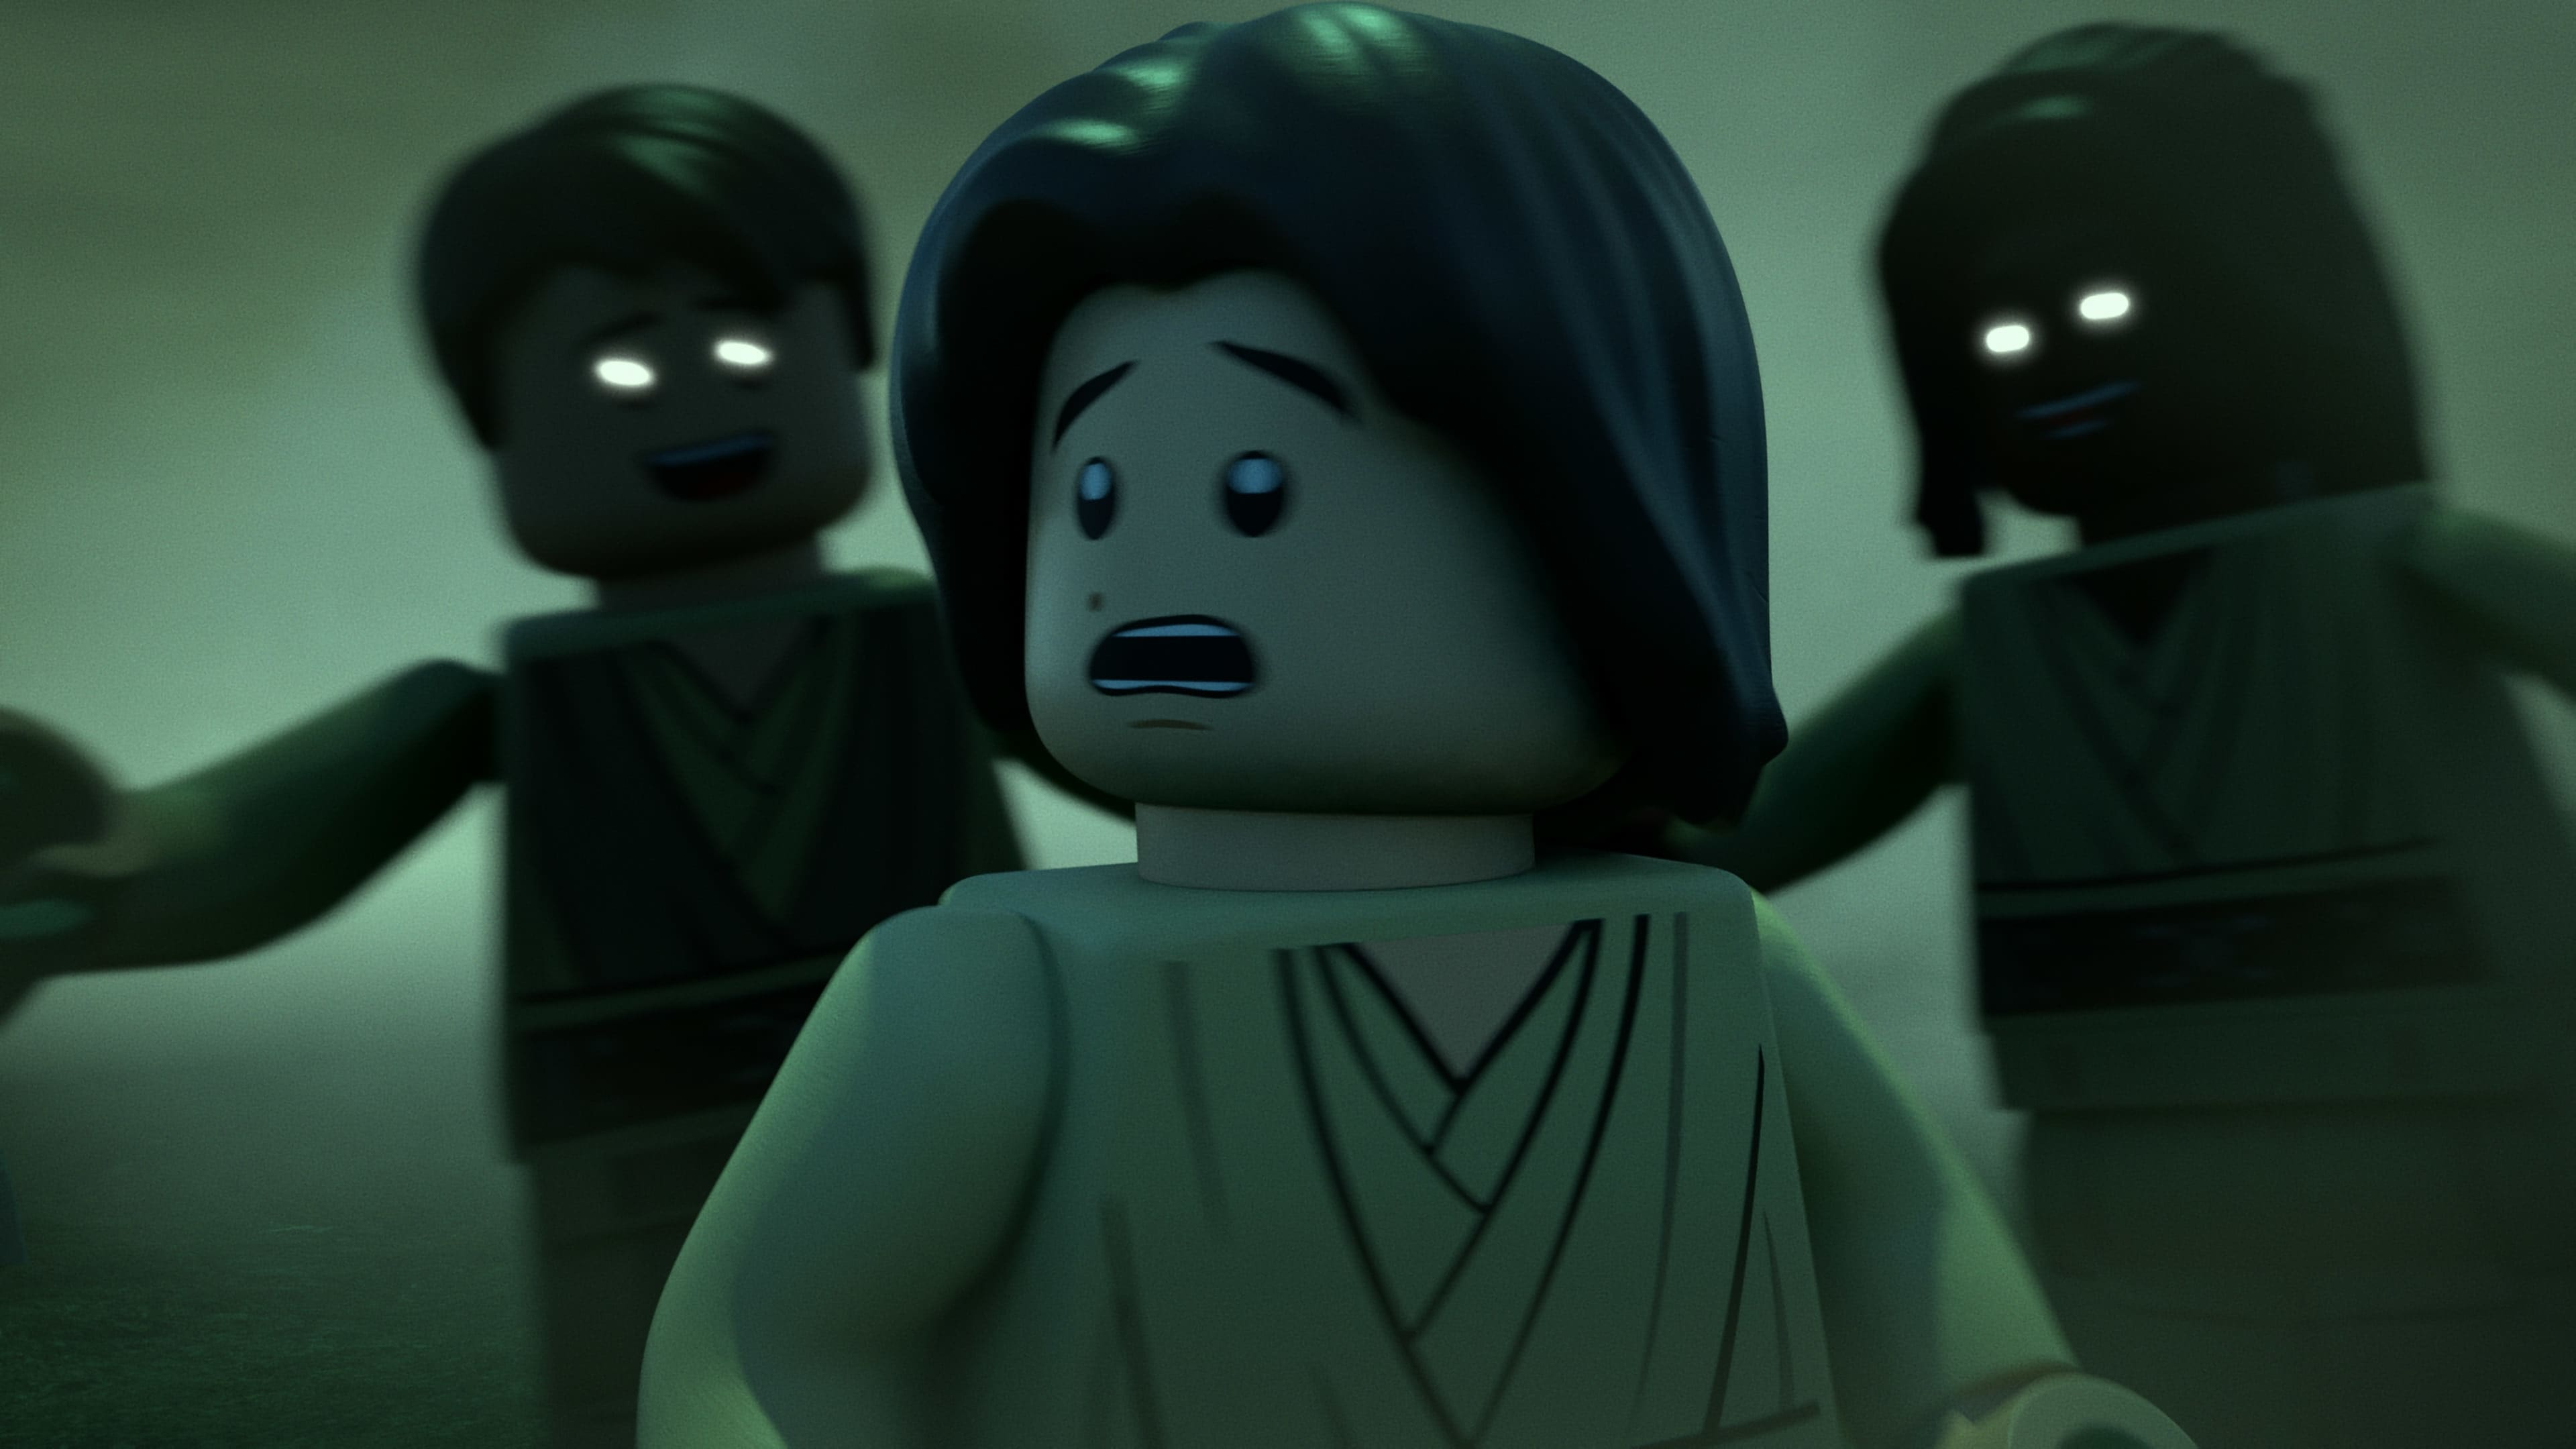 (Center): Ben Solo in LEGO STAR WARS TERRIFYING TALES exclusively on Disney+. ©2021 Lucasfilm Ltd. & TM. All Rights Reserved.